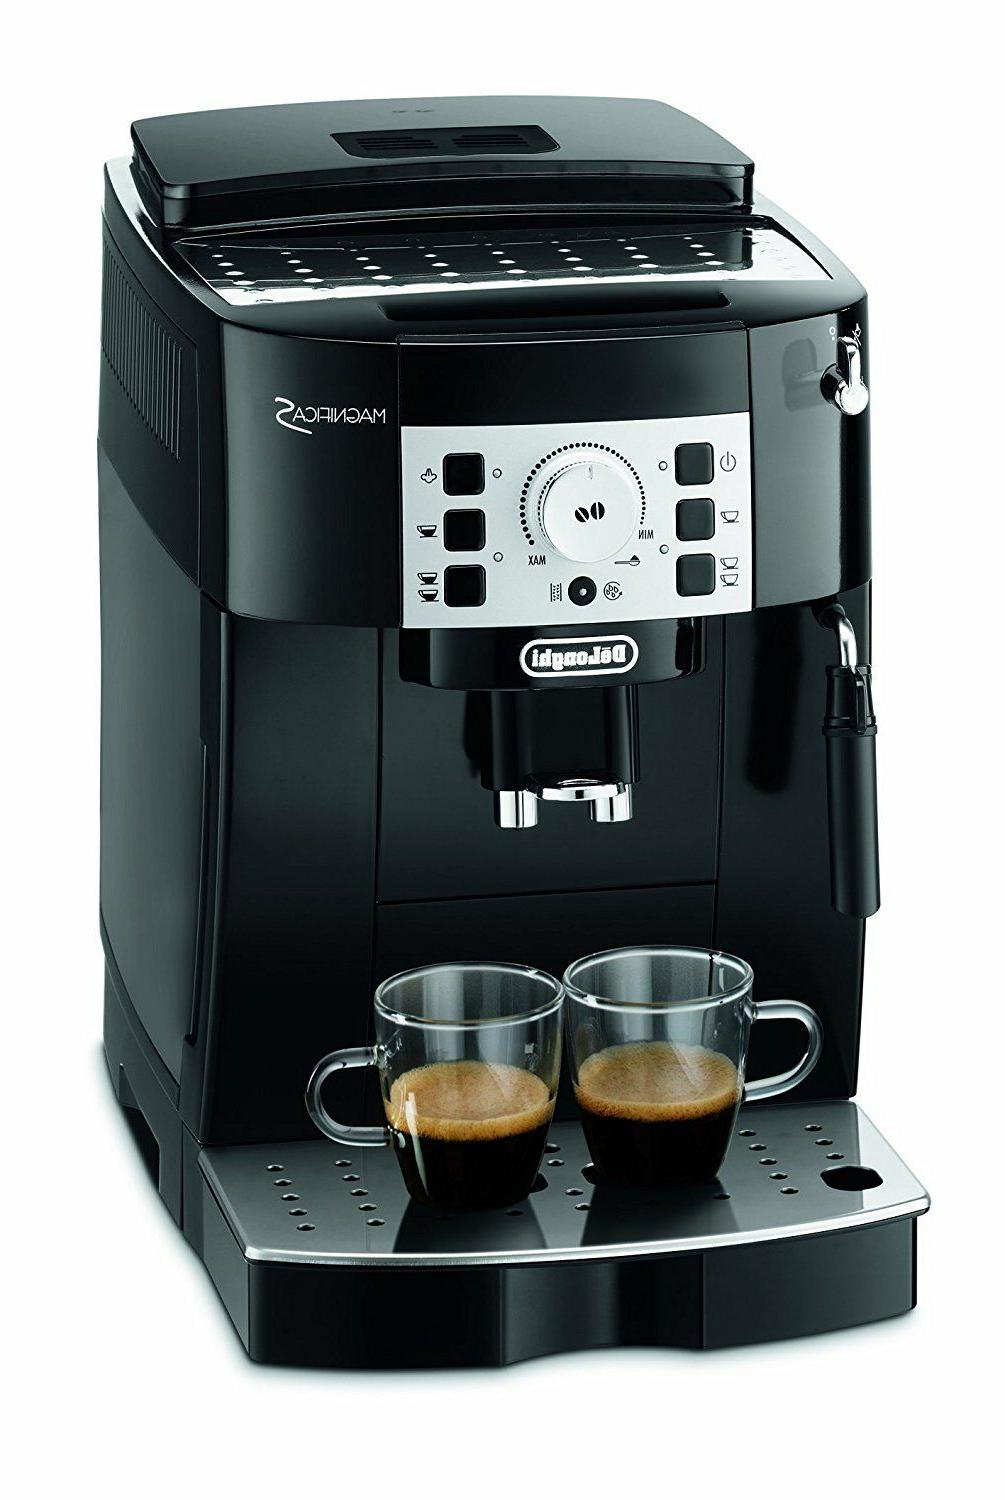 DeLonghi ECAM 22.110.B Magnifica S Coffee Machine Black Capp